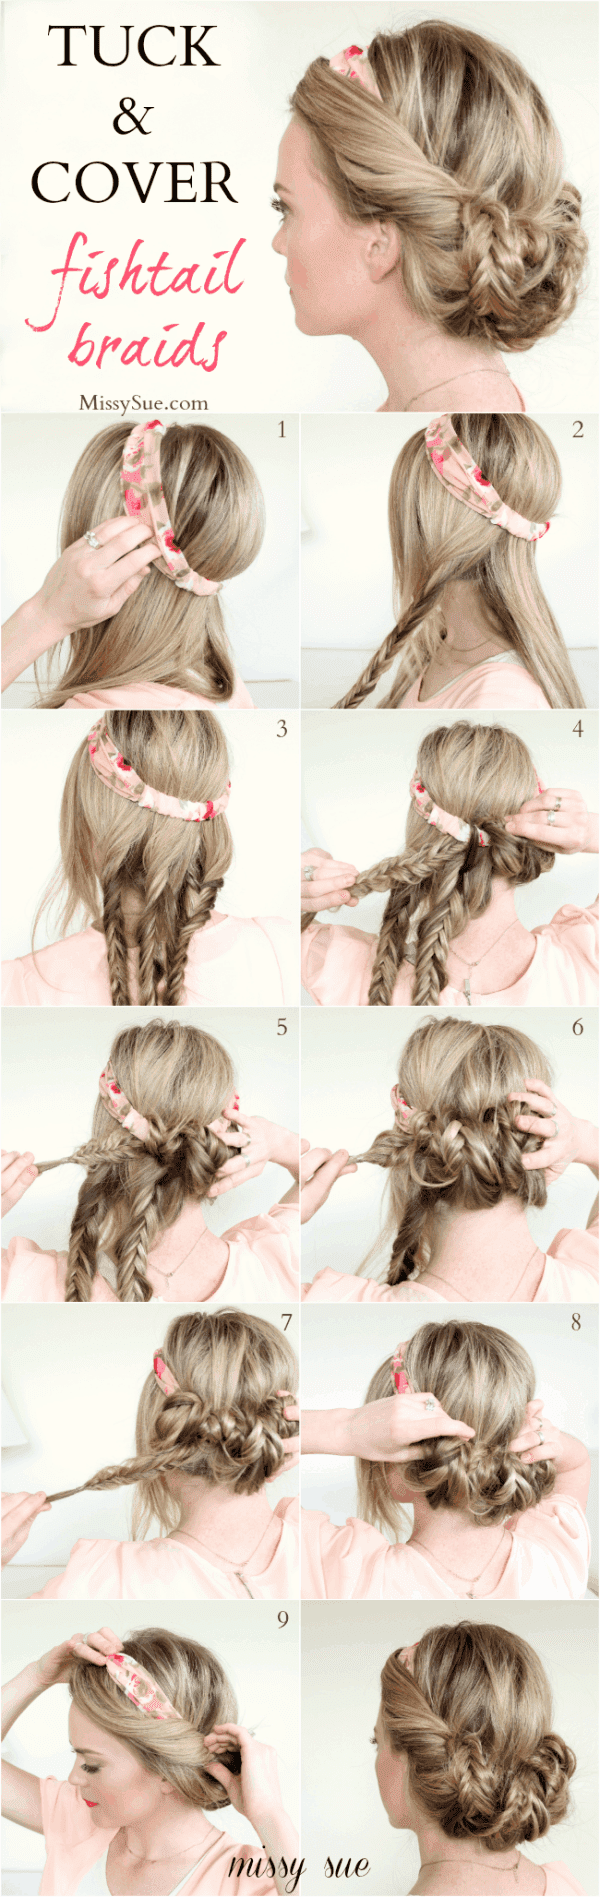 33 gorgeous hairstyle tutorials to diy at home diy cozy home 3 tuck and cover fishtail braids baditri Gallery